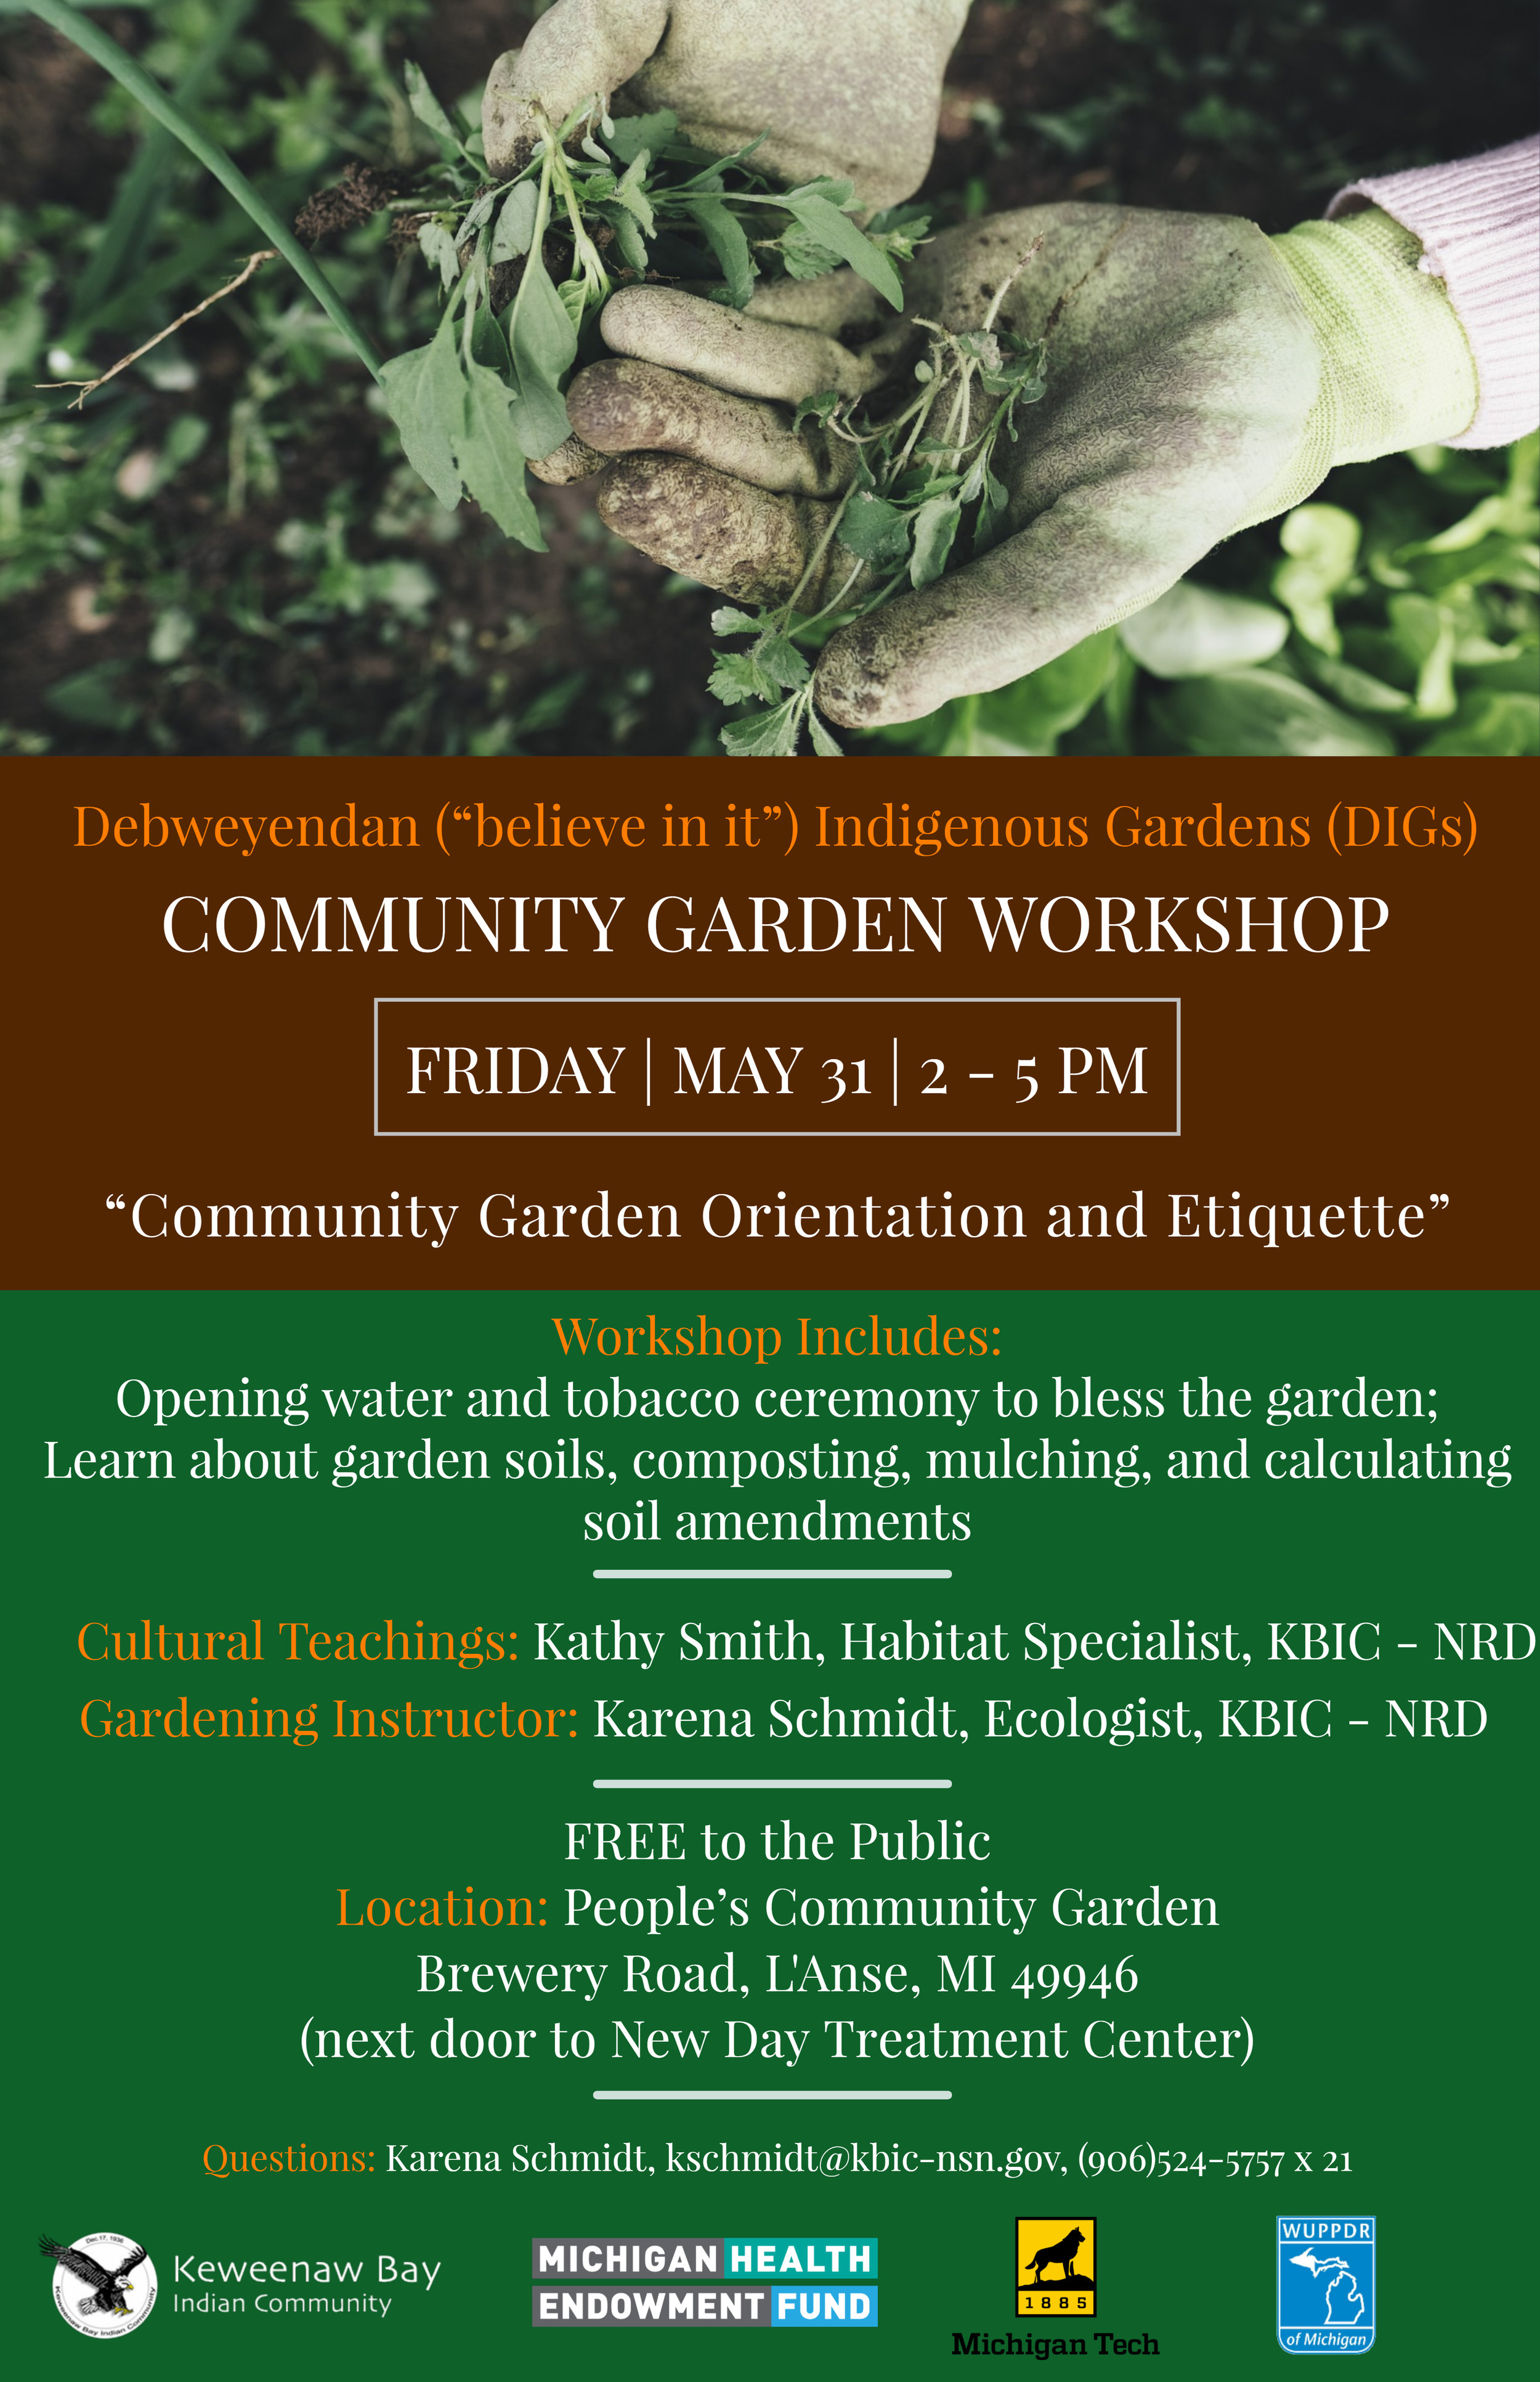 Community Garden Workshop Flyer.jpg